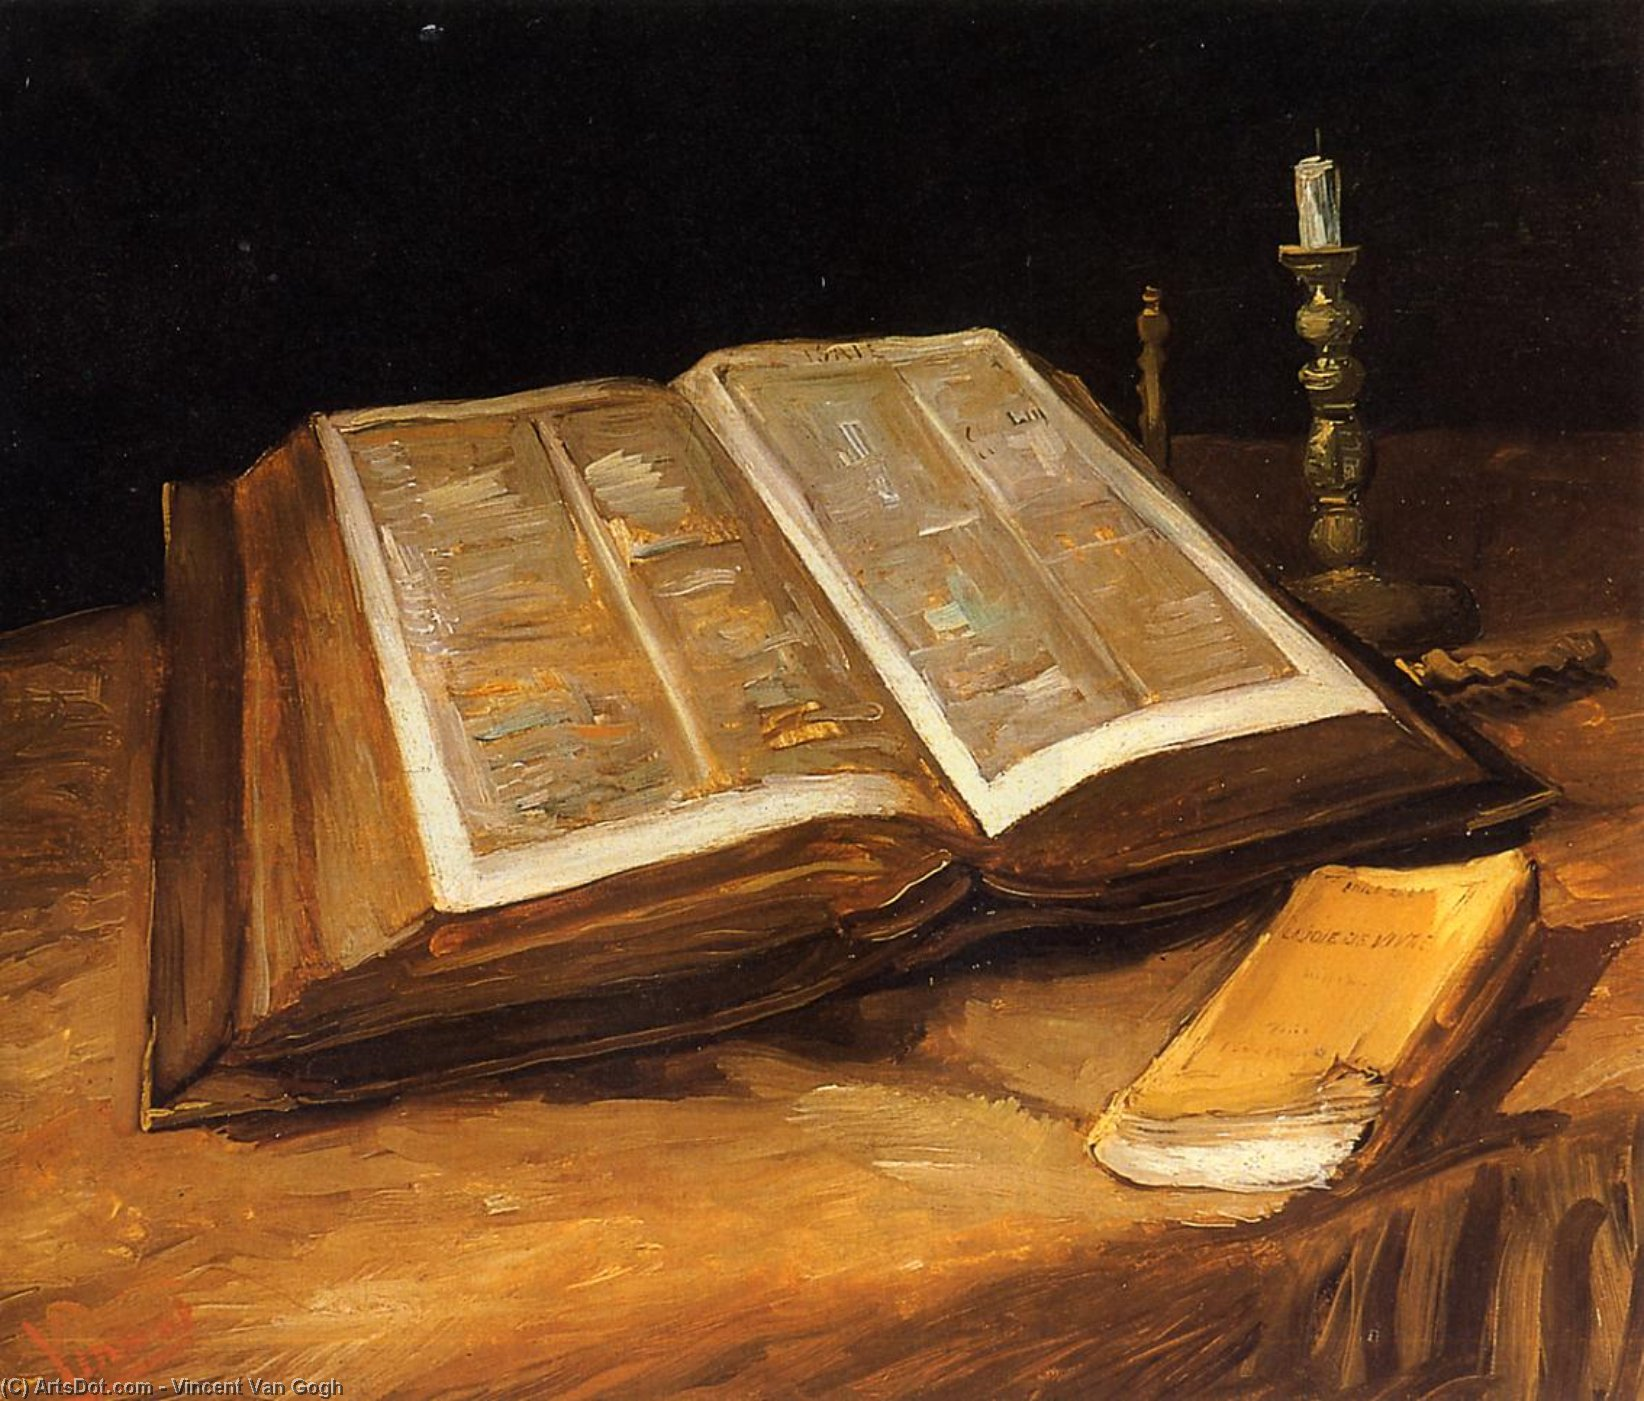 Wikioo.org - The Encyclopedia of Fine Arts - Painting, Artwork by Vincent Van Gogh - Still Life with Bible